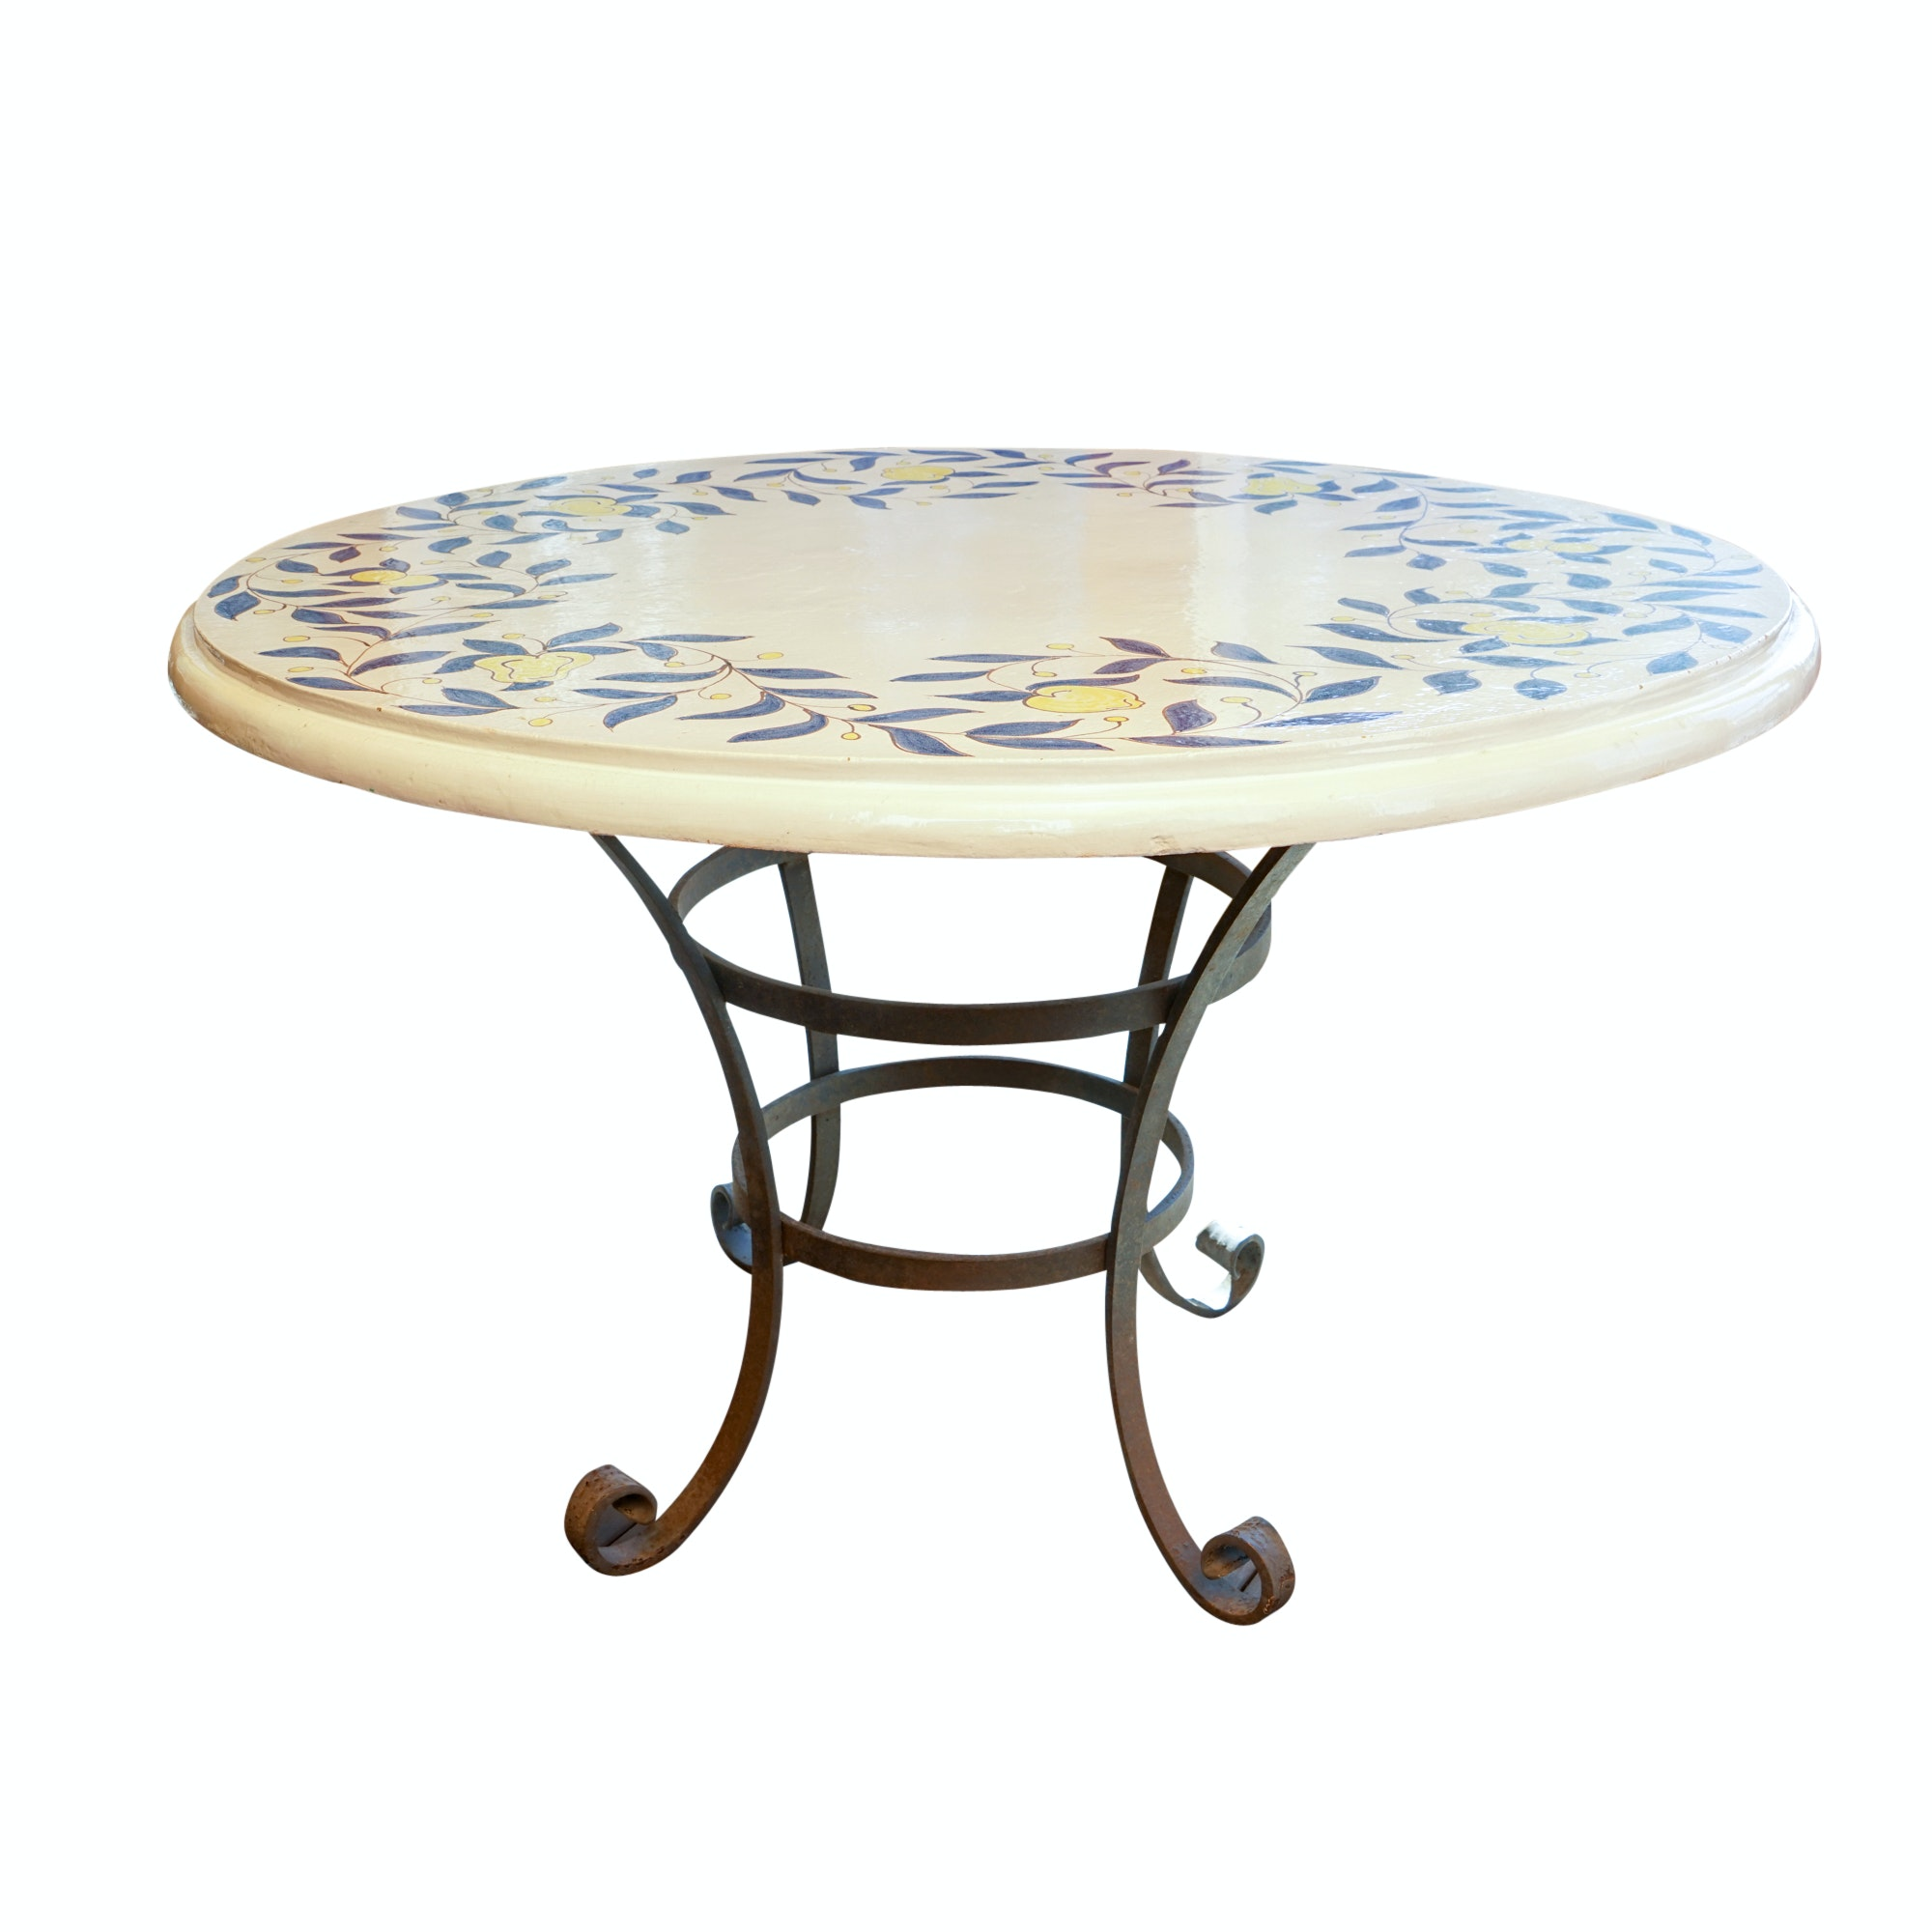 Ceramic Patio Table with Wrought Iron Base